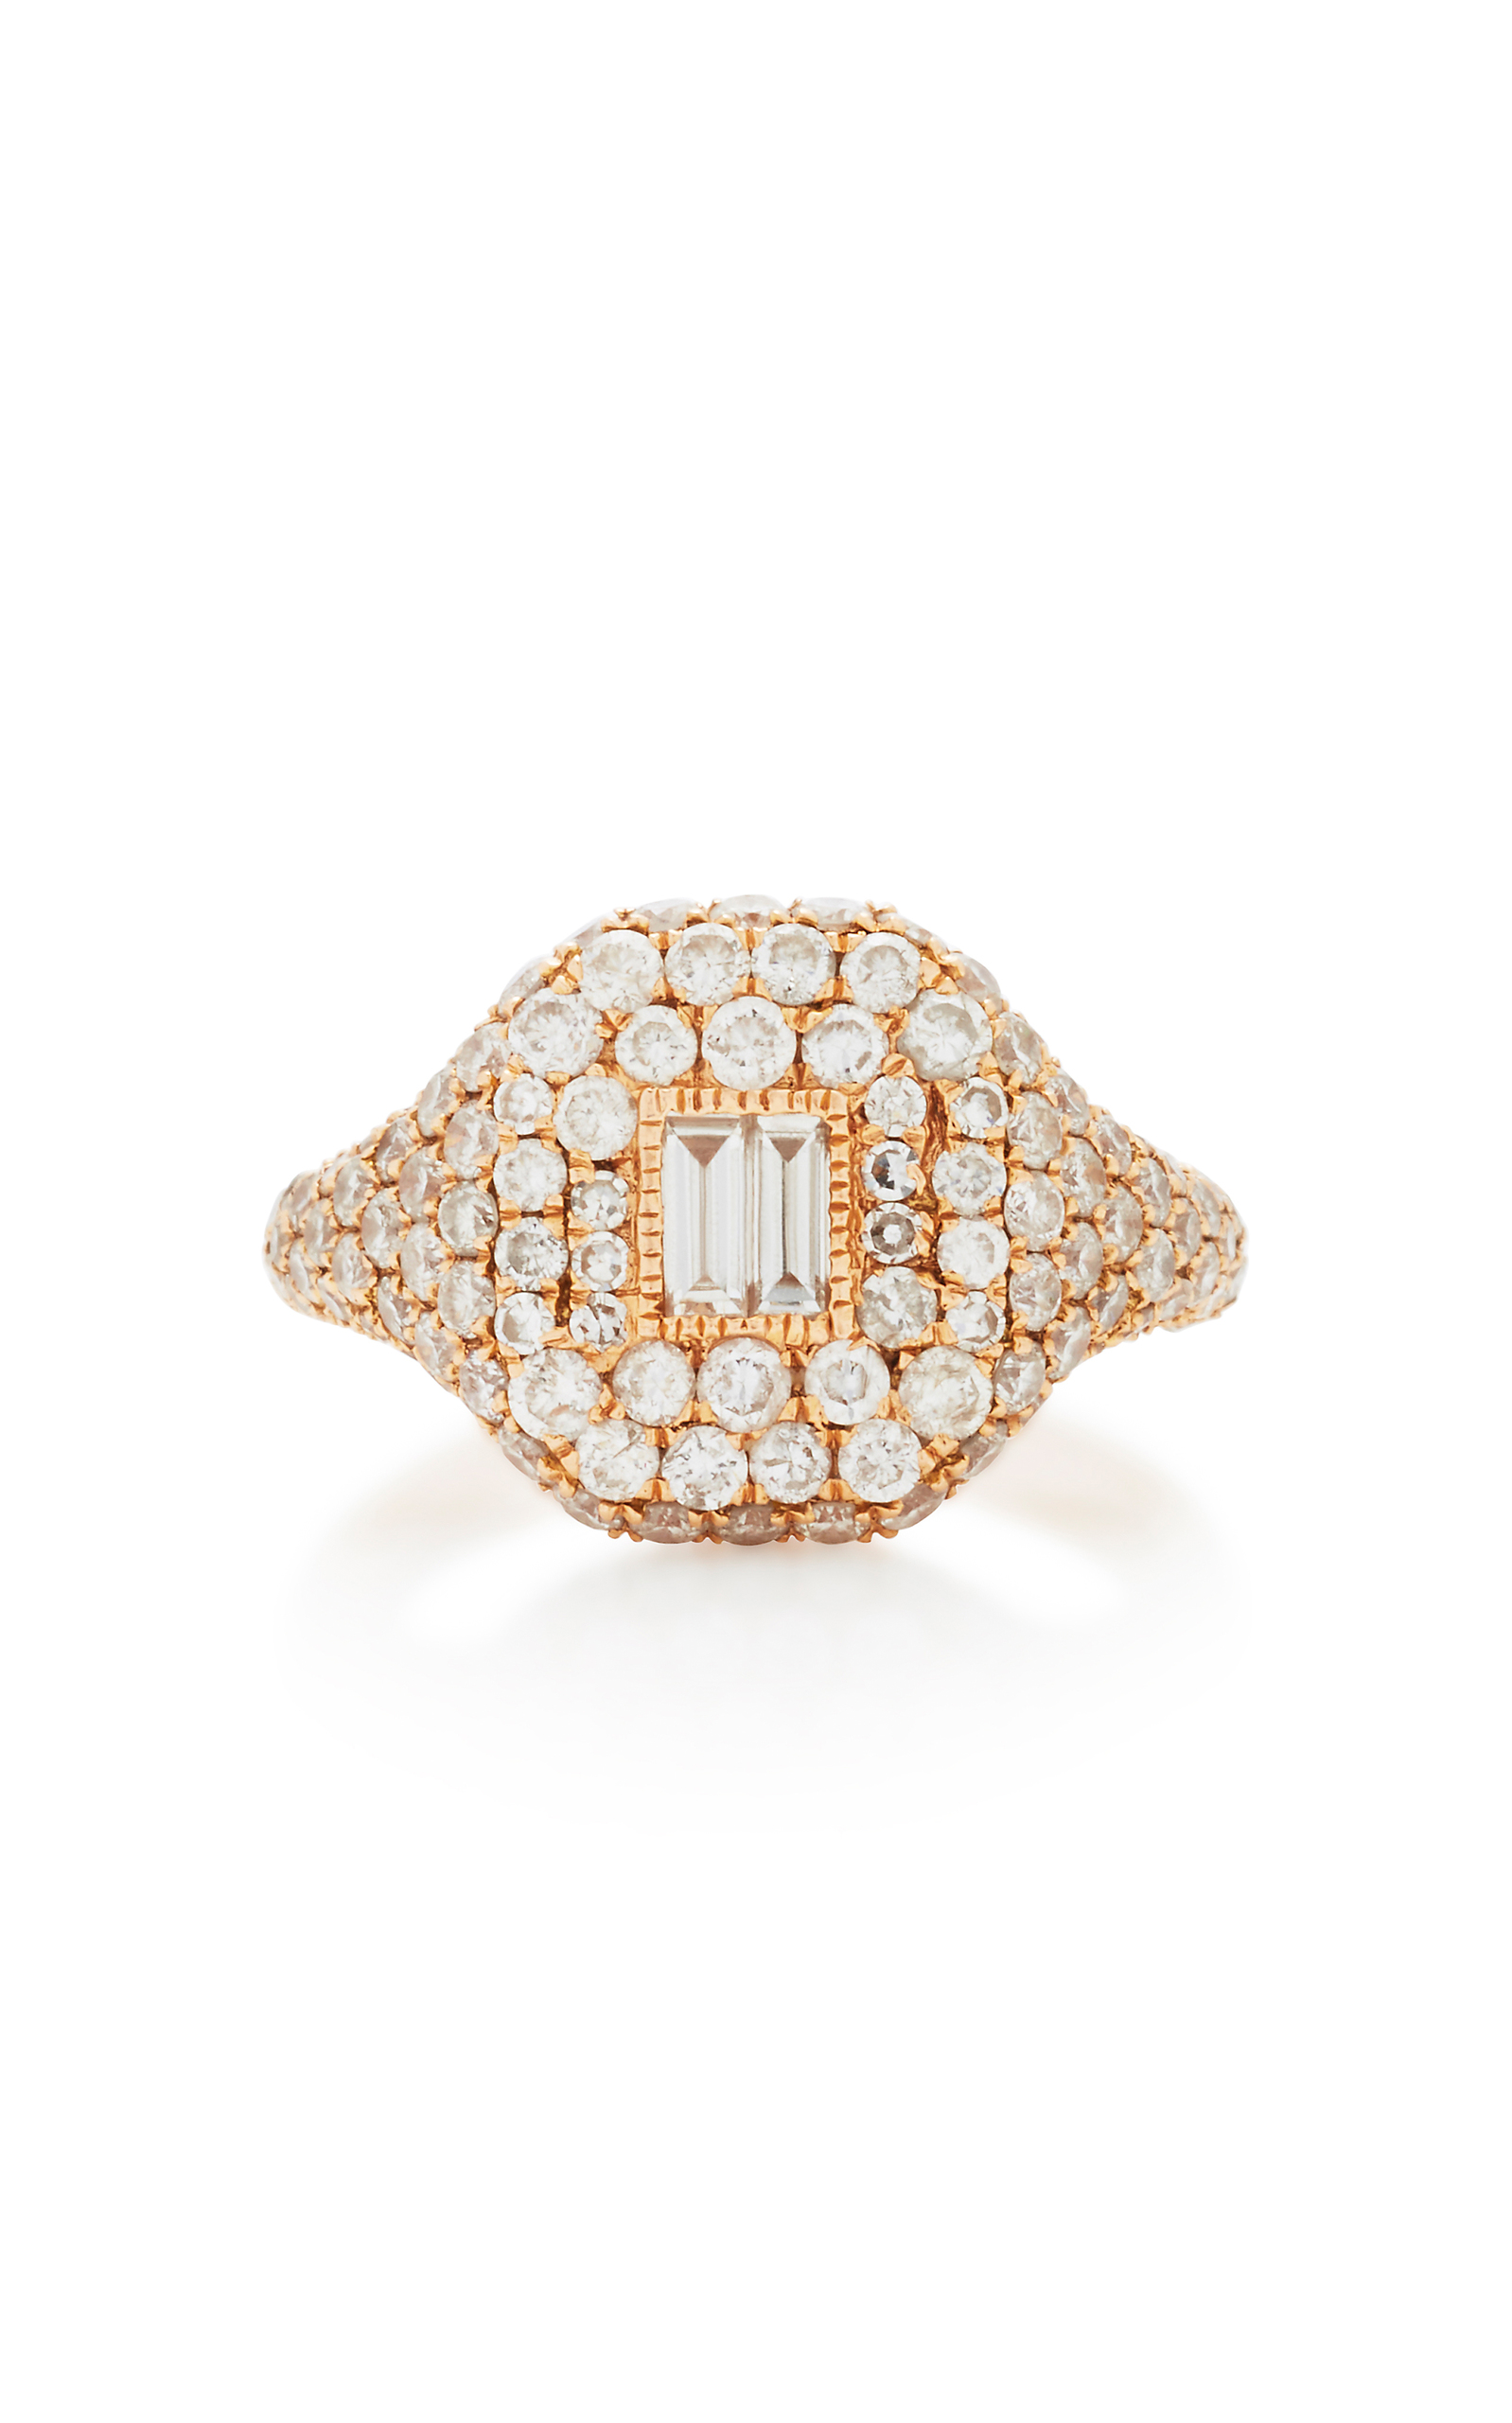 SHAY Pave Pinky Ring with Baguette Diamond Center